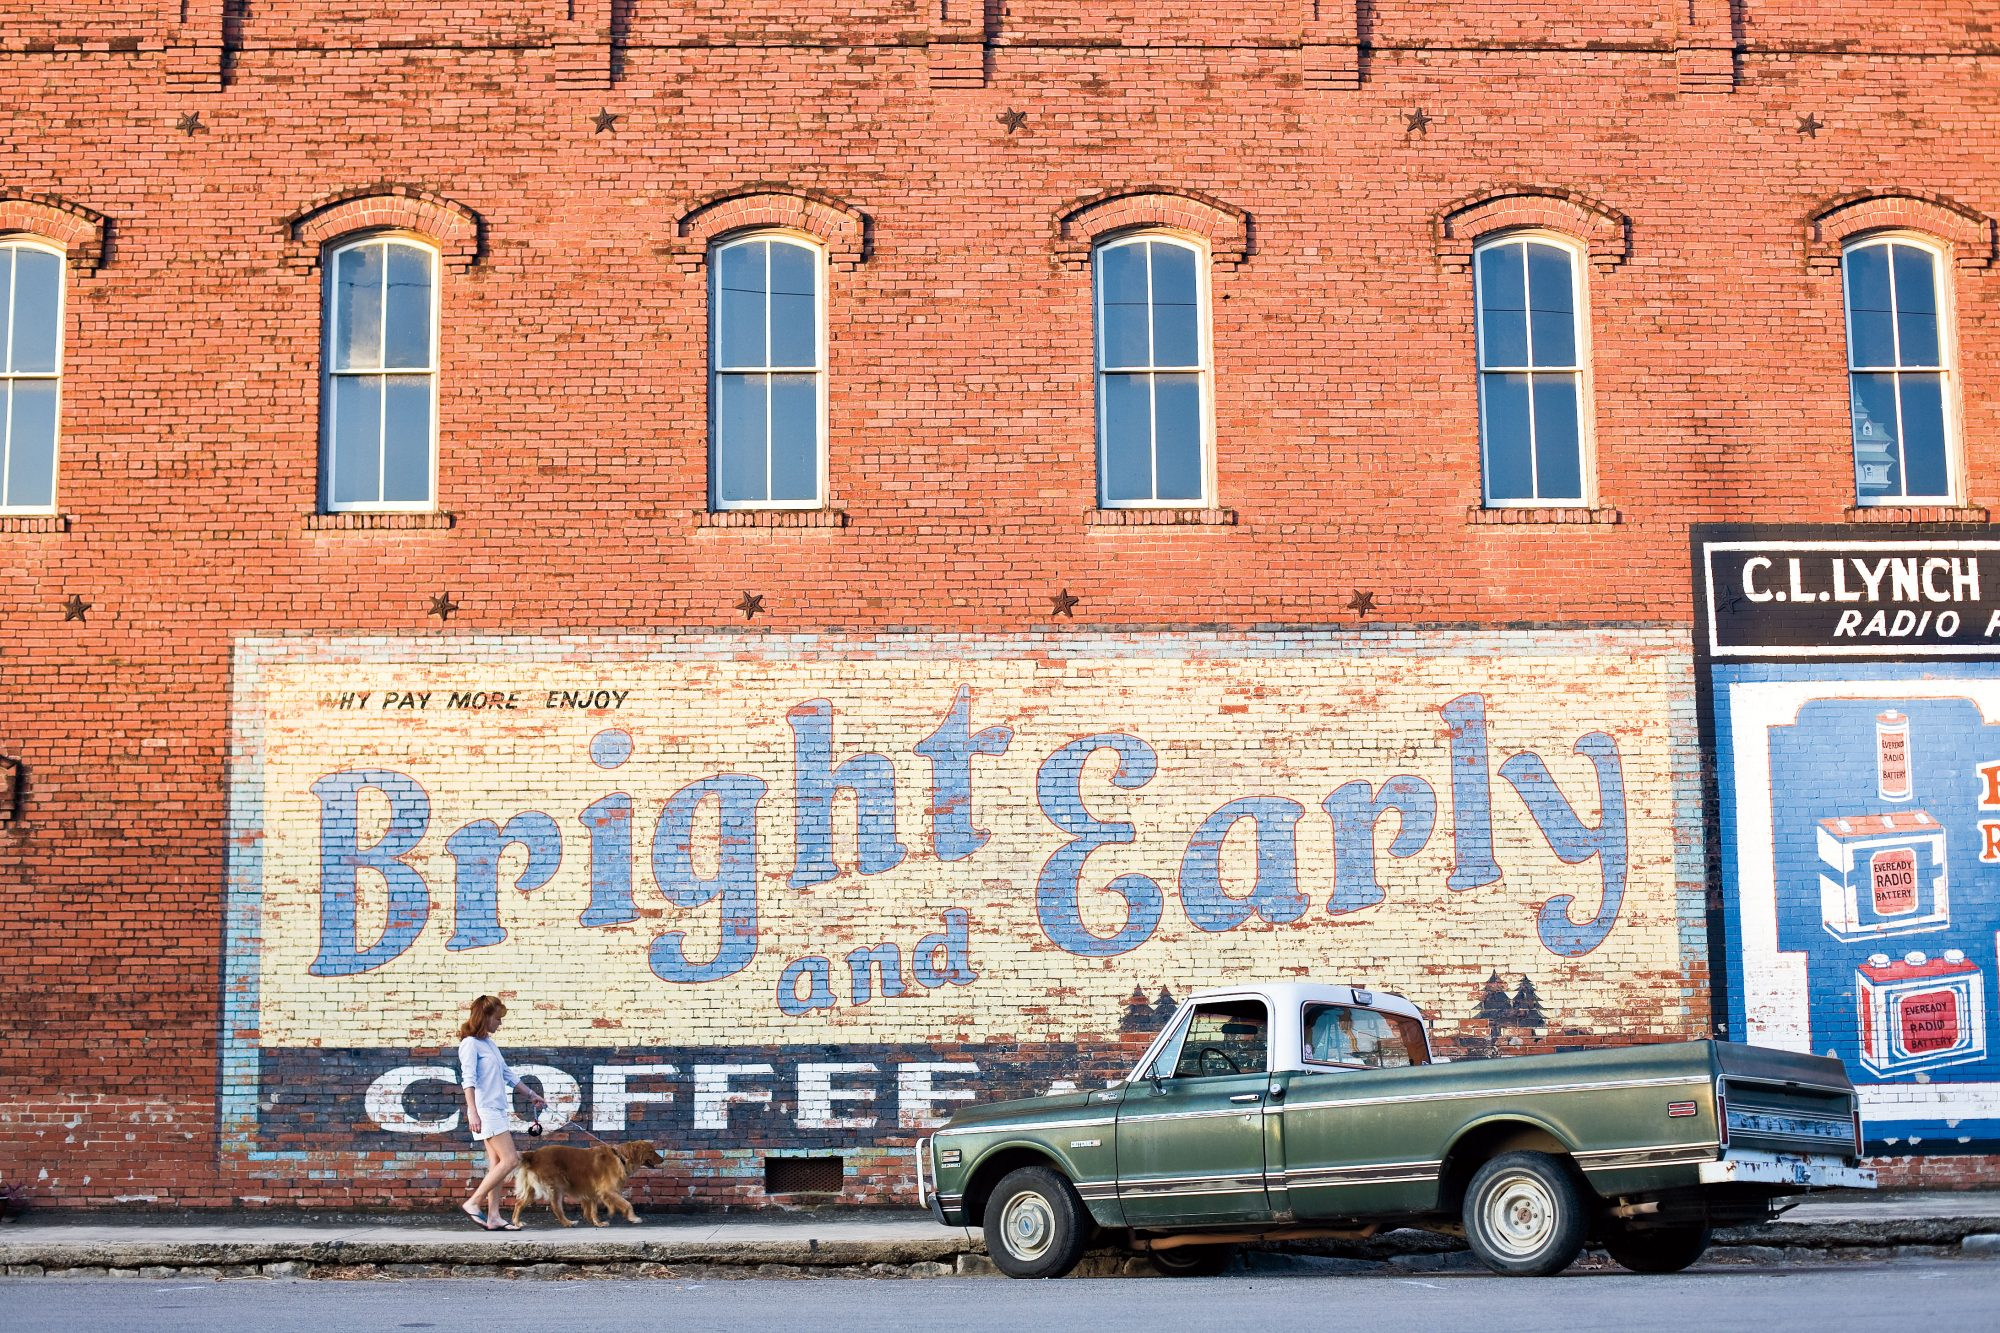 Mural on First Street in Hico, Texas